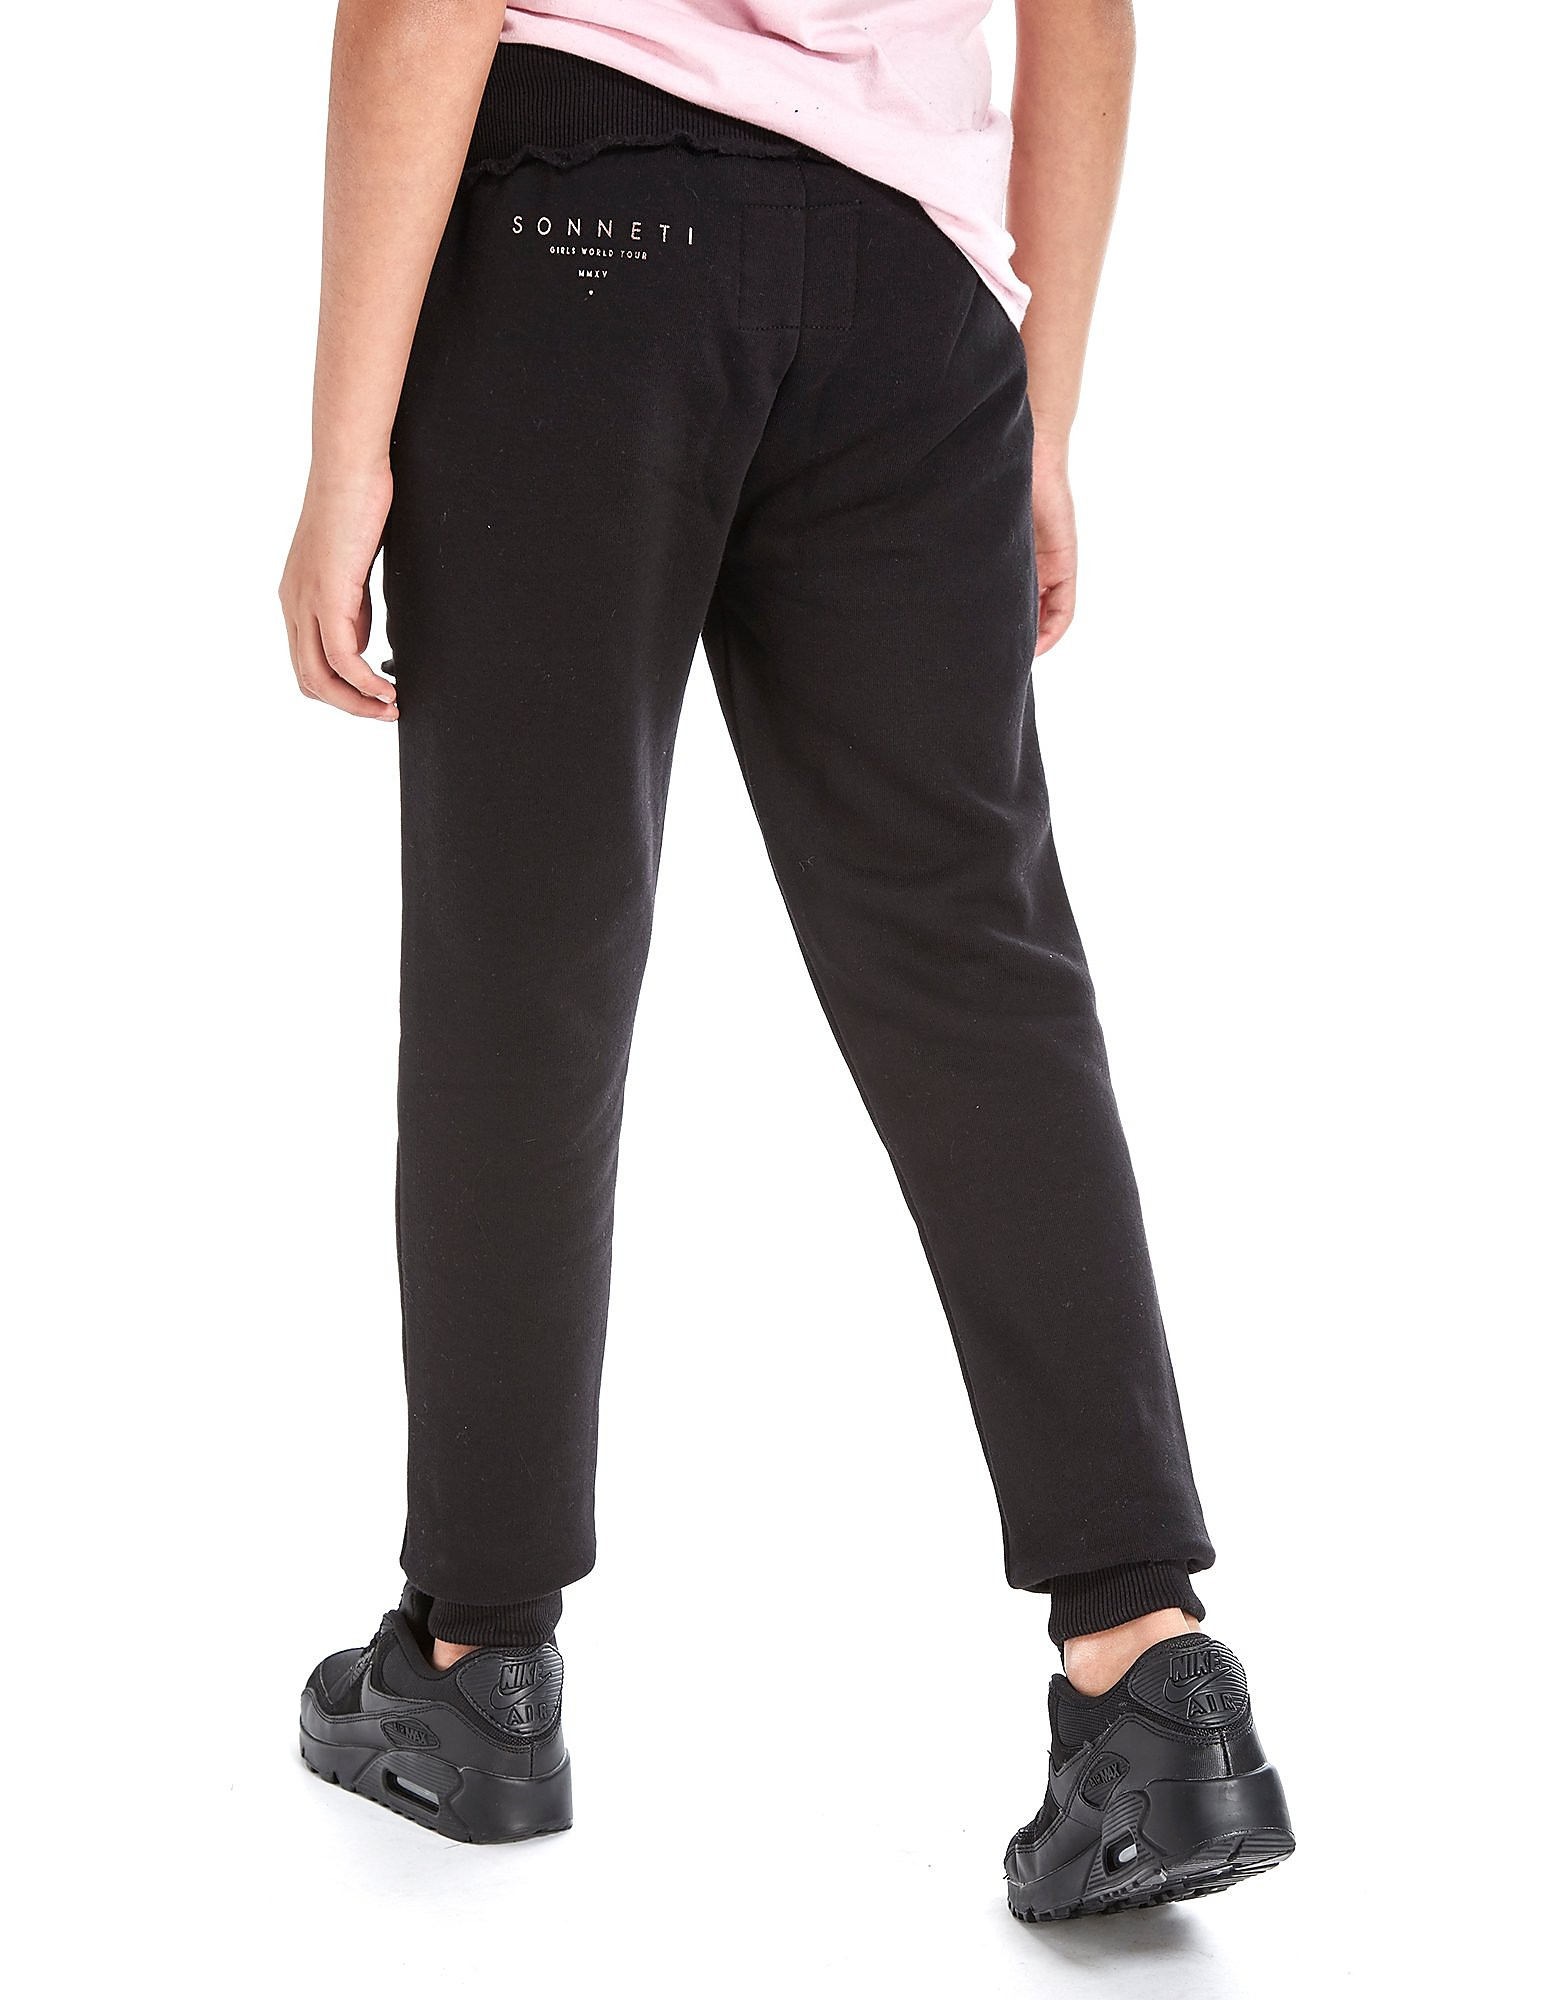 Sonneti pantalón Girls' Raw júnior